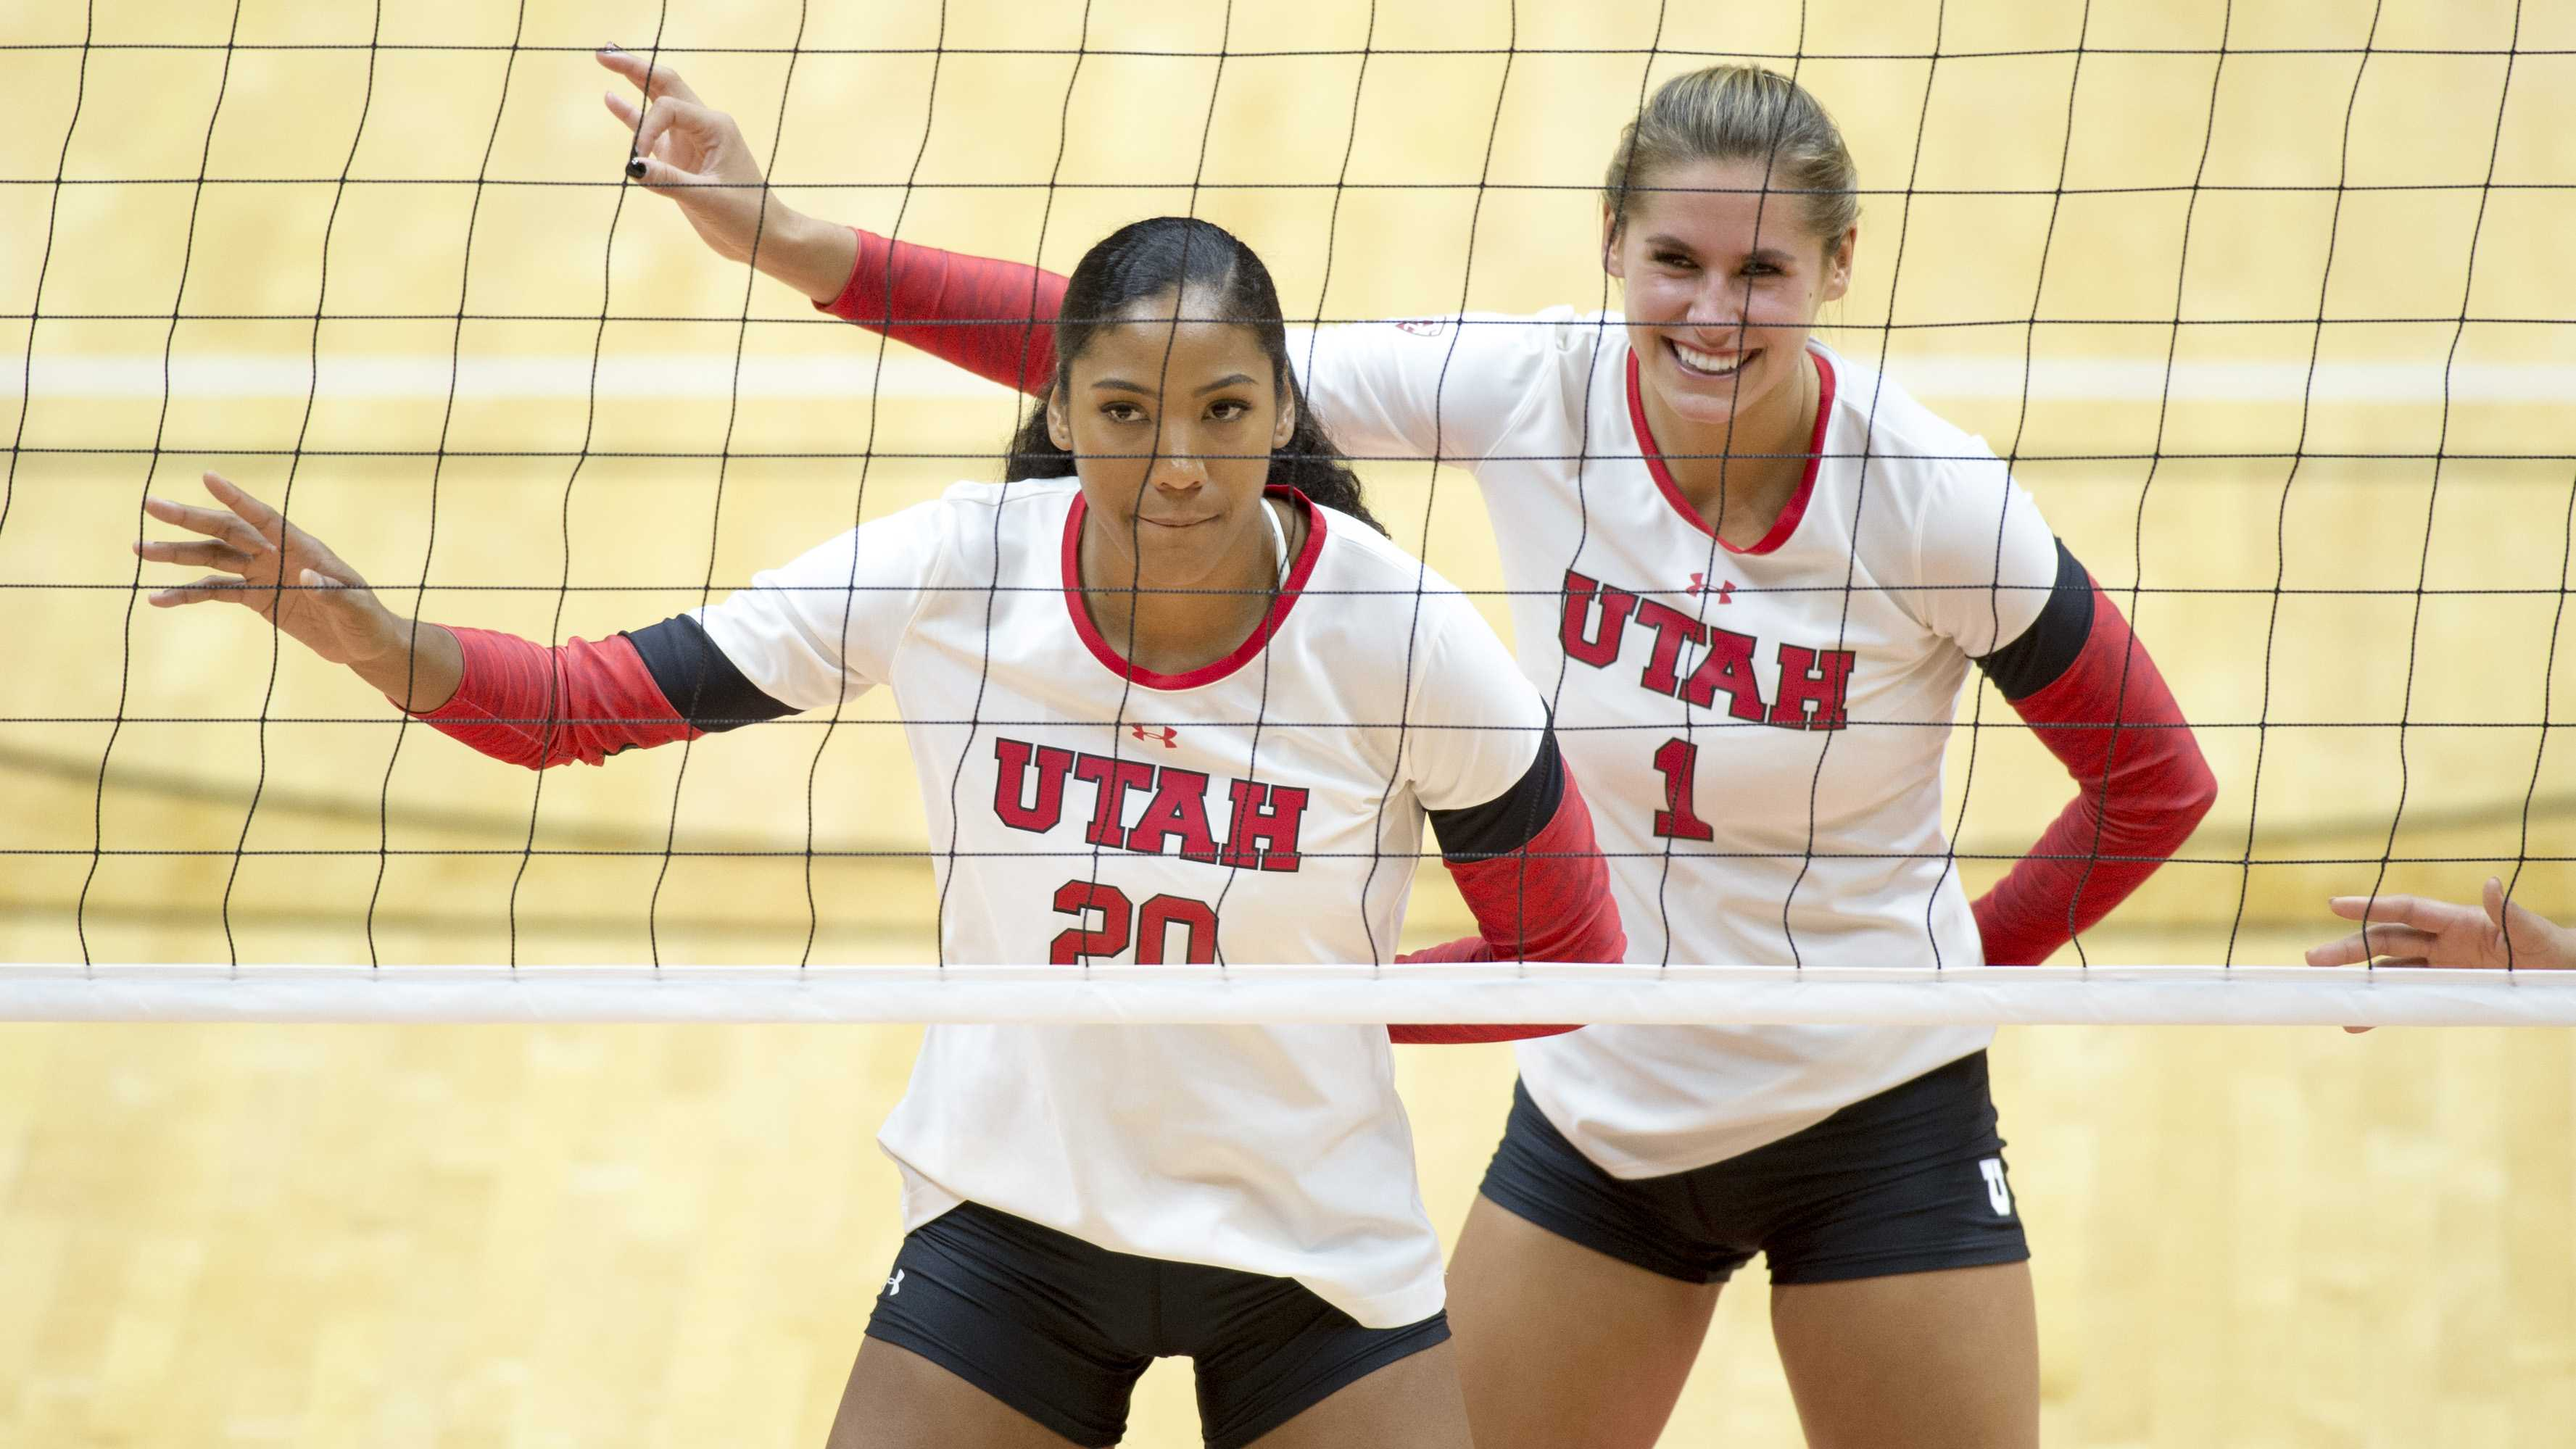 University of Utah Volleyball senior middle blocker Tawnee Luafalemana (20) and freshman outside hitter Dani Barton (1) line up before a serve in a set of matches vs. The Oregon Ducks at the Huntsman Center in Salt Lake City, UT on Friday, Sept. 29, 2017  (Photo by Kiffer Creveling | The Daily Utah Chronicle)